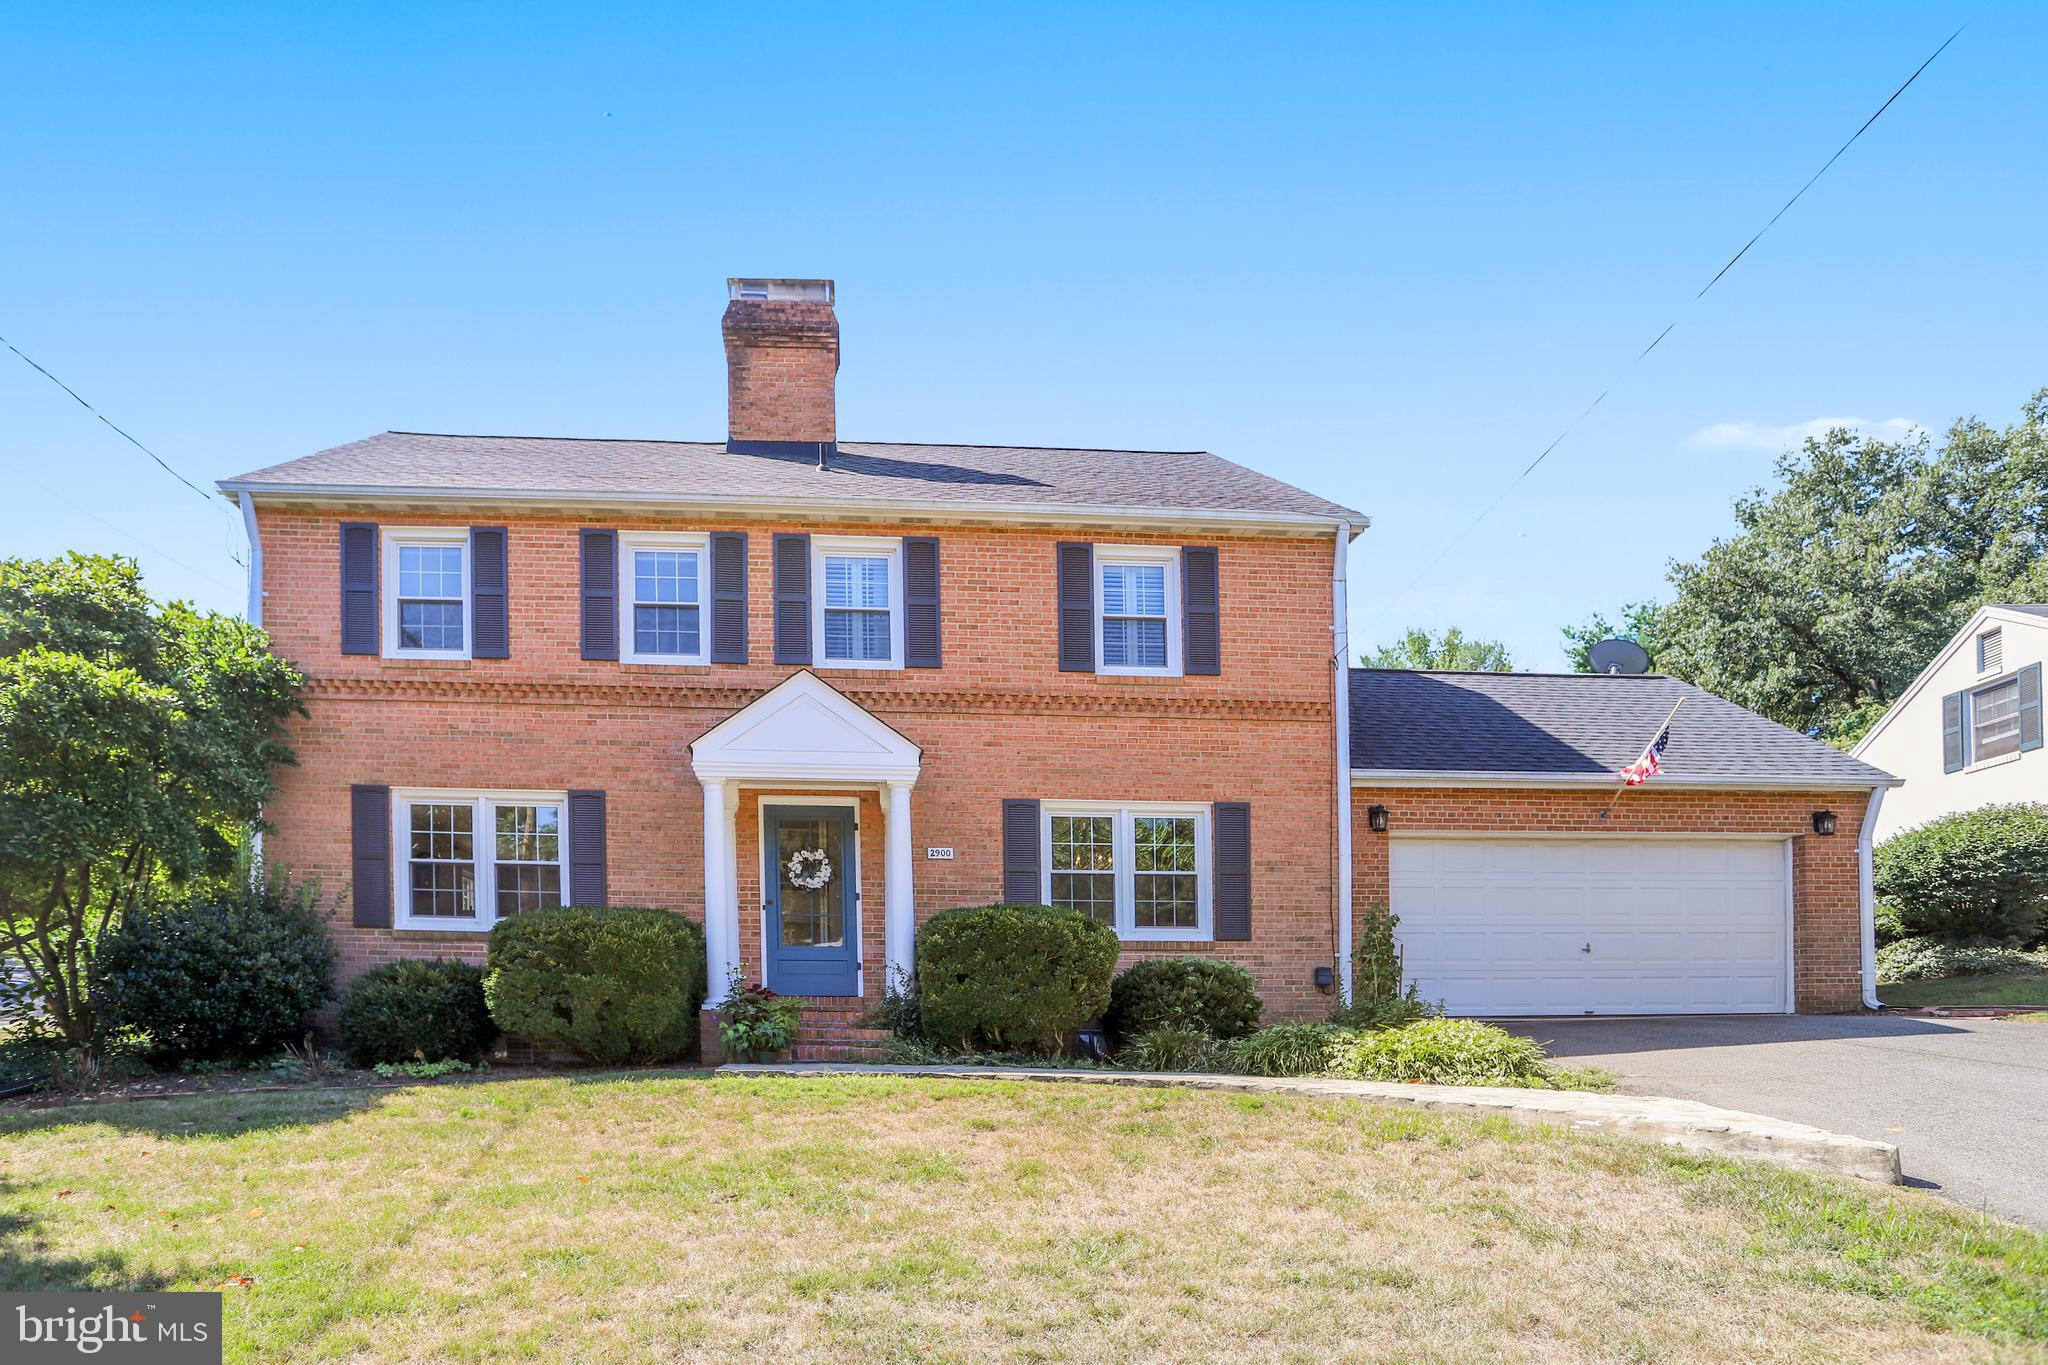 A beautiful Magnolia tree enhances this 3,000 square foot brick Colonial in the highly sought after, close-in Clover neighborhood. Just minutes from all major roadways, the King Street Metro, DC, Old Town, the Pentagon and Reagan National Airport.  Boasting four bedrooms and two updated baths on the upper level and a convenient, remodeled half bath on the main level. Beautiful hardwood floors. Brand new carpet in the lower level family room, den/office and in one of the upper level bedrooms. Two-car attached garage! Walking distance to Douglas MacArthur Elementary school. This one is not to be missed....So much space at such a great price! Very quiet section of the community...and very lightly traveled street!